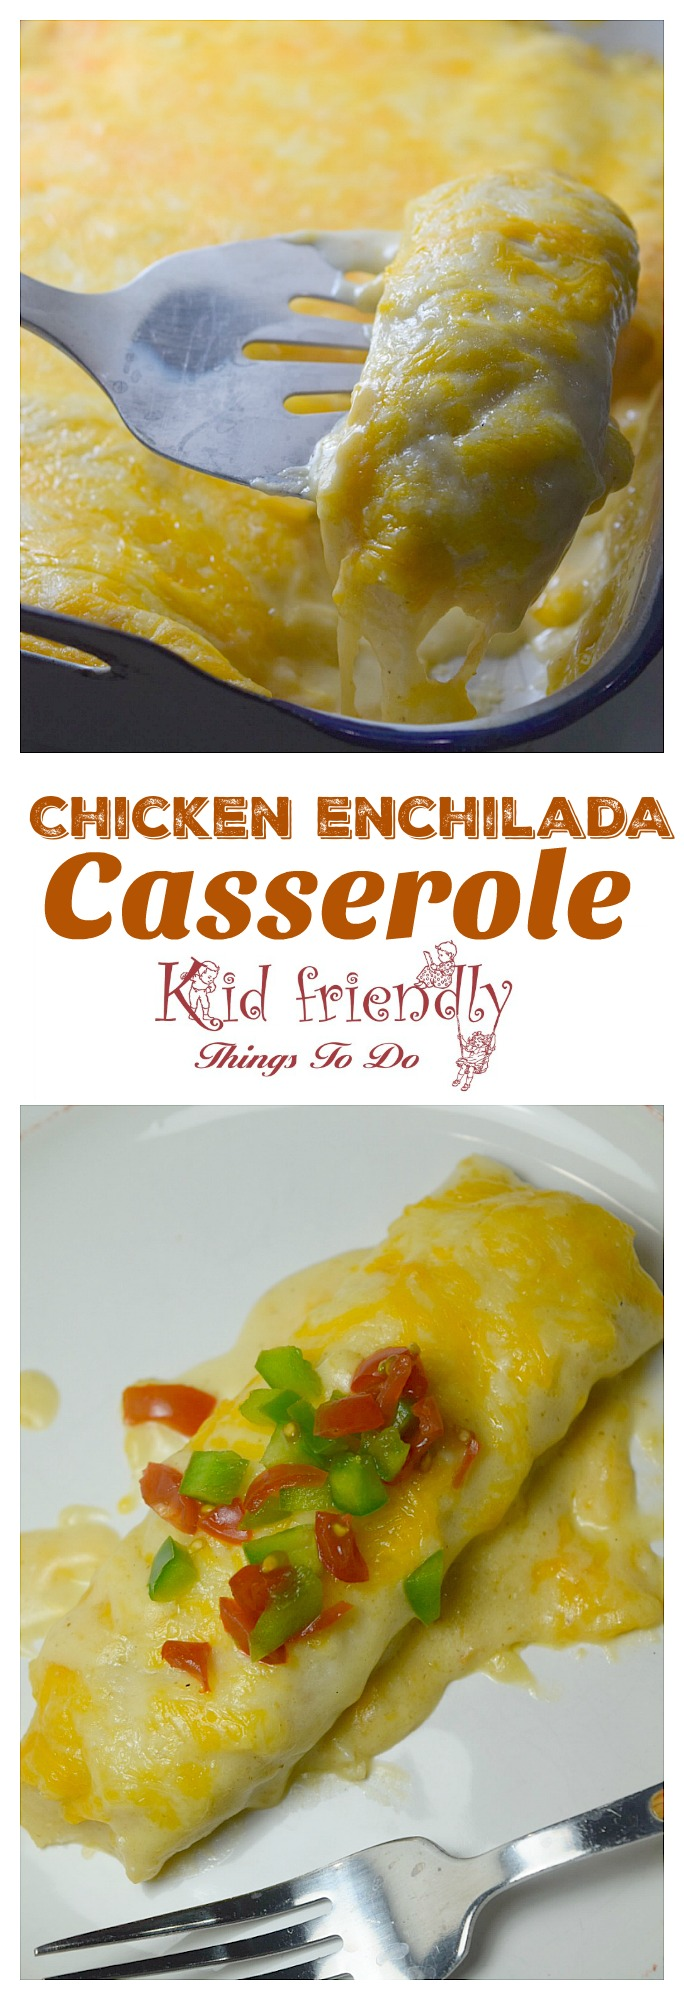 Chicken Enchilada Casserole with Sour Cream sauce - www.kidfriendlythingstodo.com